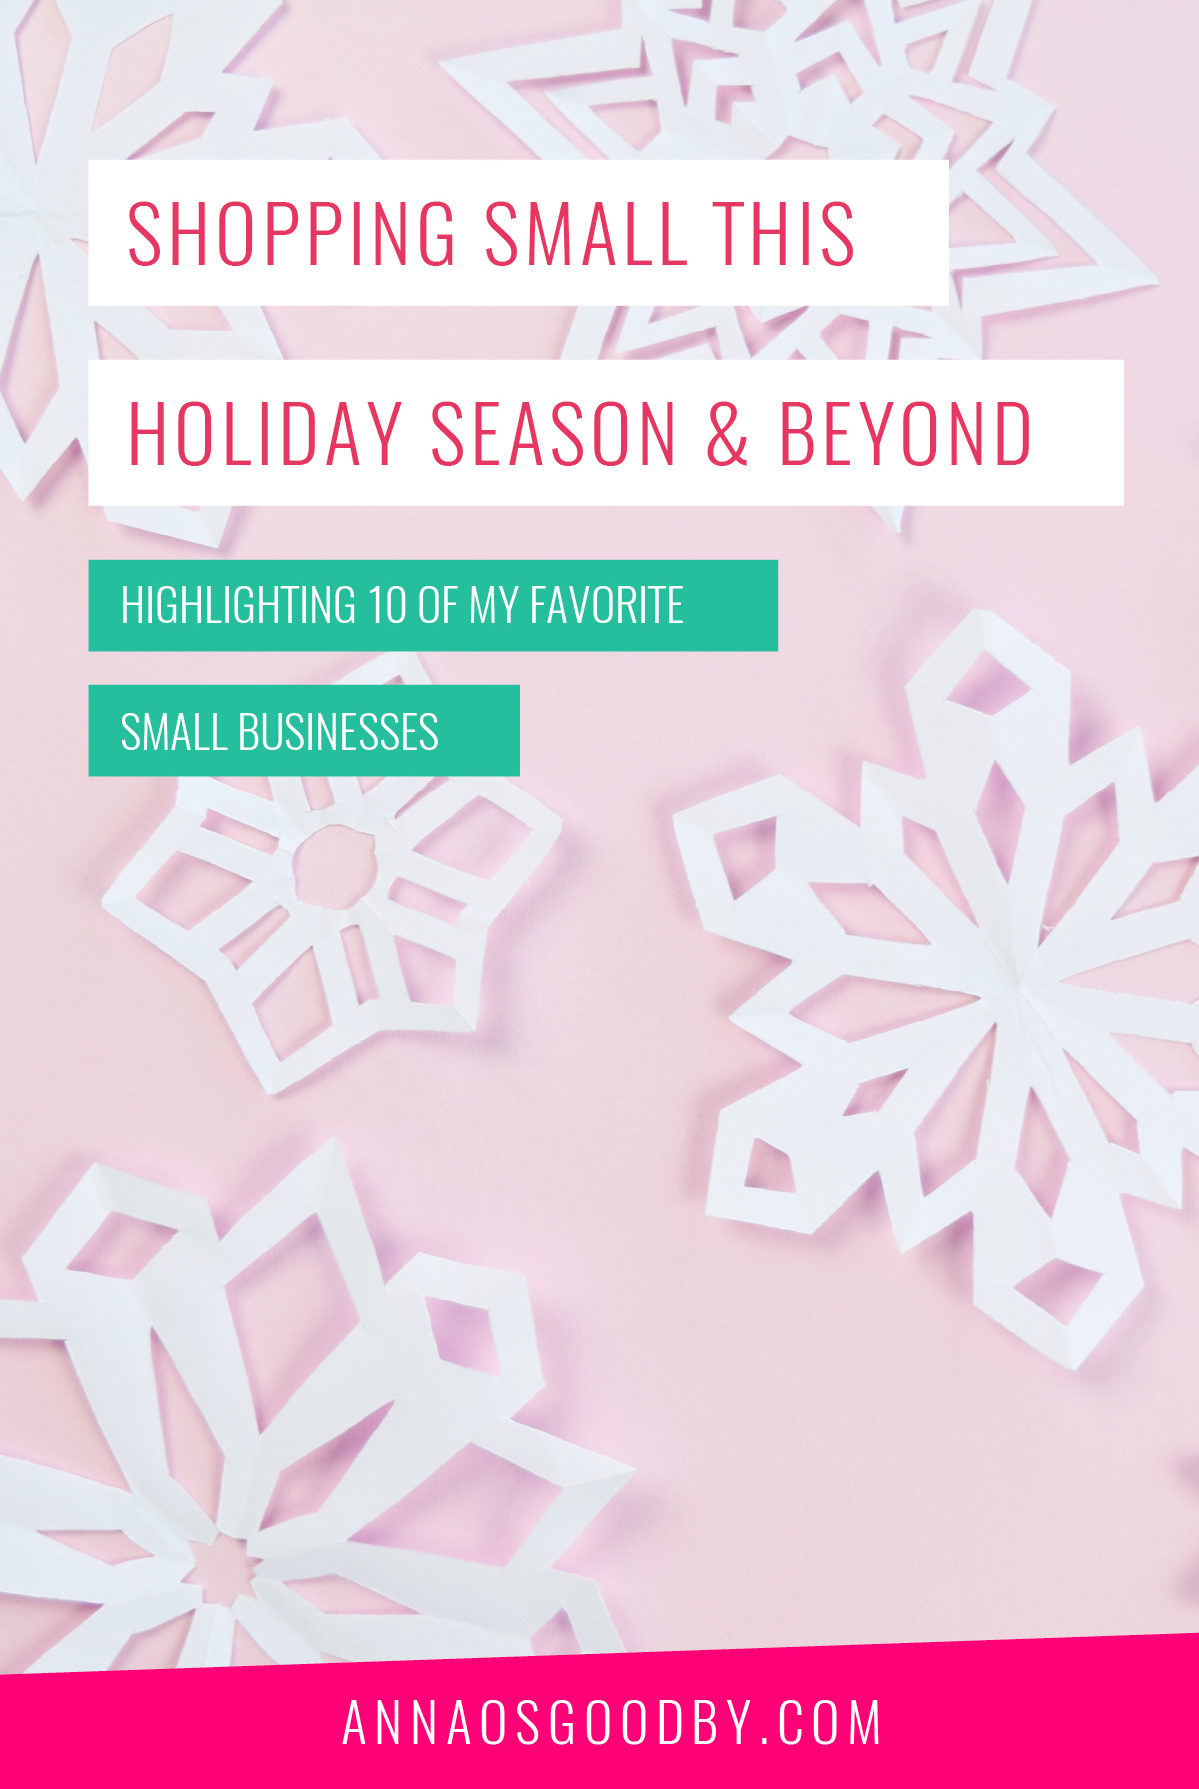 Anna Osgoodby Life + Design :: Shopping Small This Holiday Season & Beyond :: Highlighting 10 of My Favorite Small Businesses